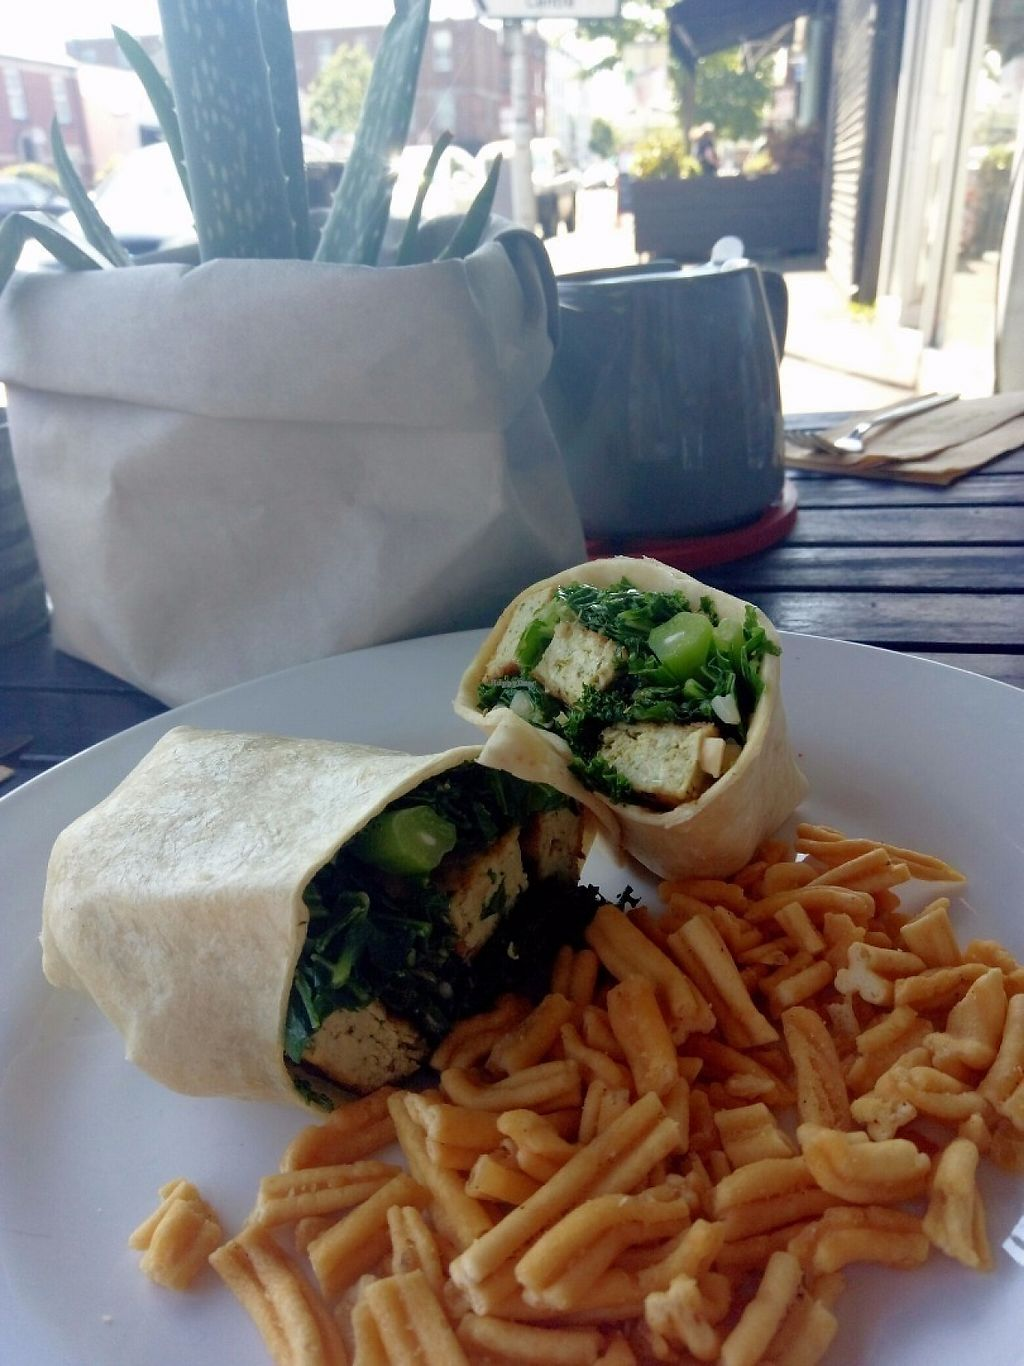 """Photo of 387 Ormeau Road  by <a href=""""/members/profile/Dannimm"""">Dannimm</a> <br/>Tofu kale wrap  <br/> May 26, 2017  - <a href='/contact/abuse/image/92697/262623'>Report</a>"""